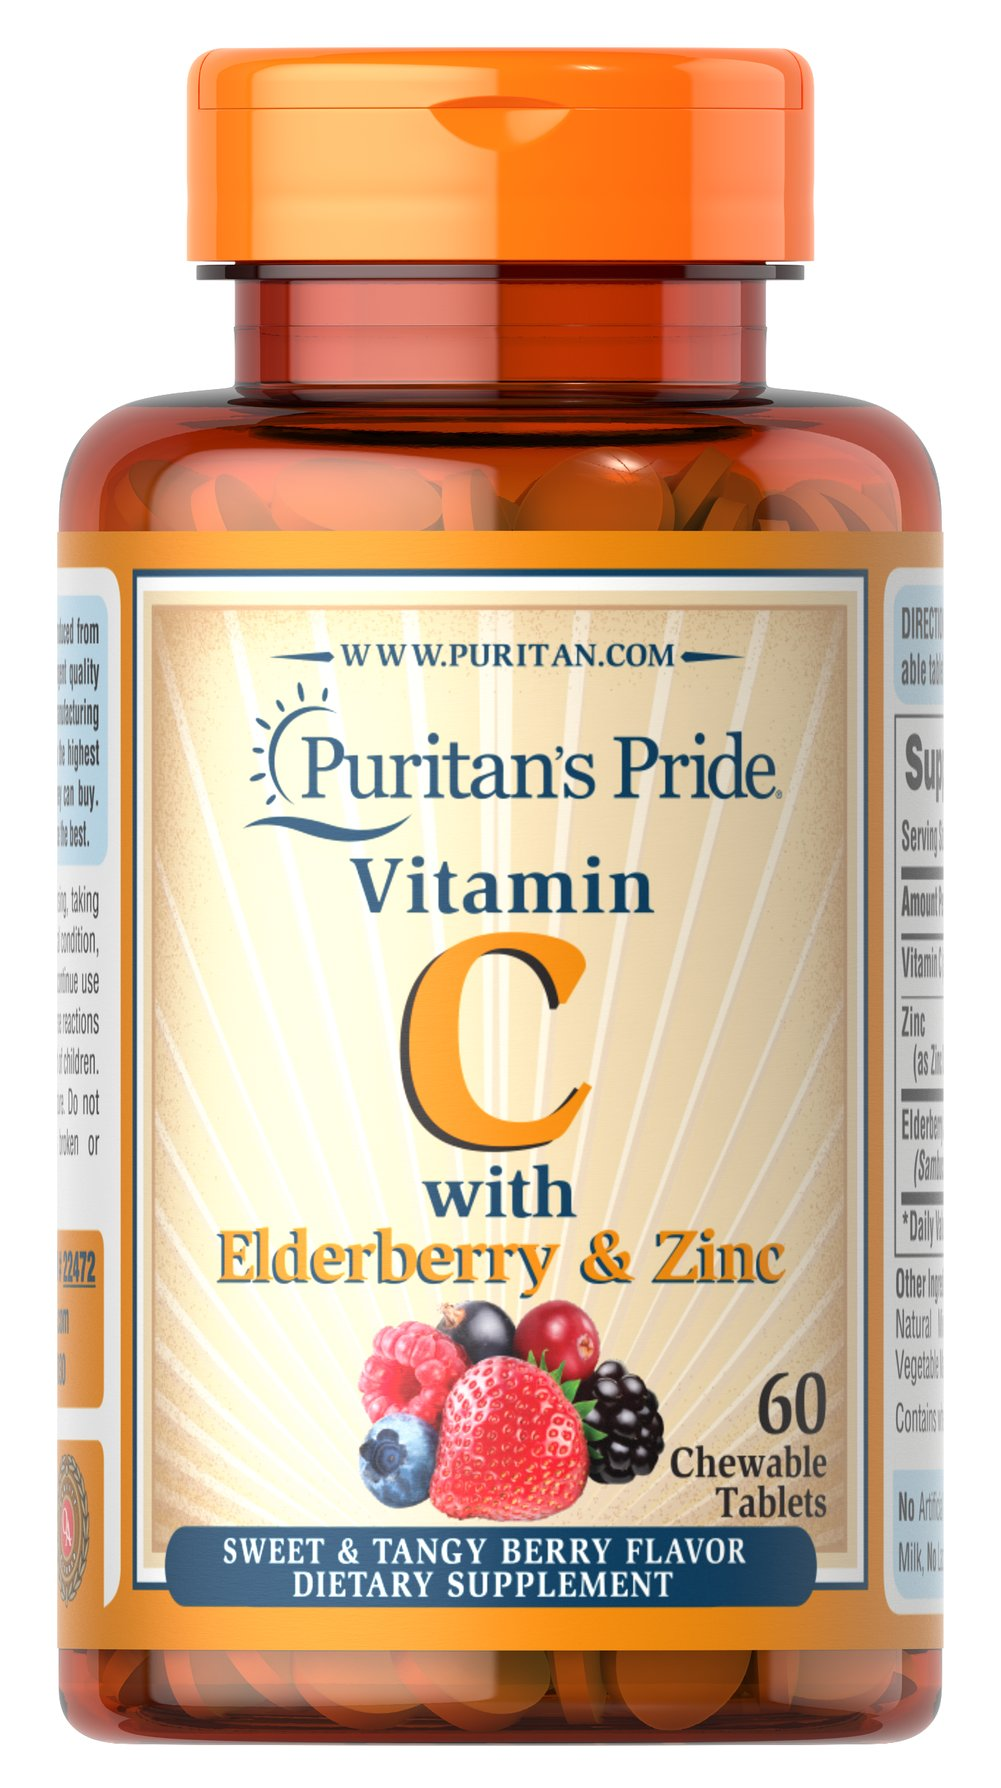 Vitamin C with Elderberry & Zinc